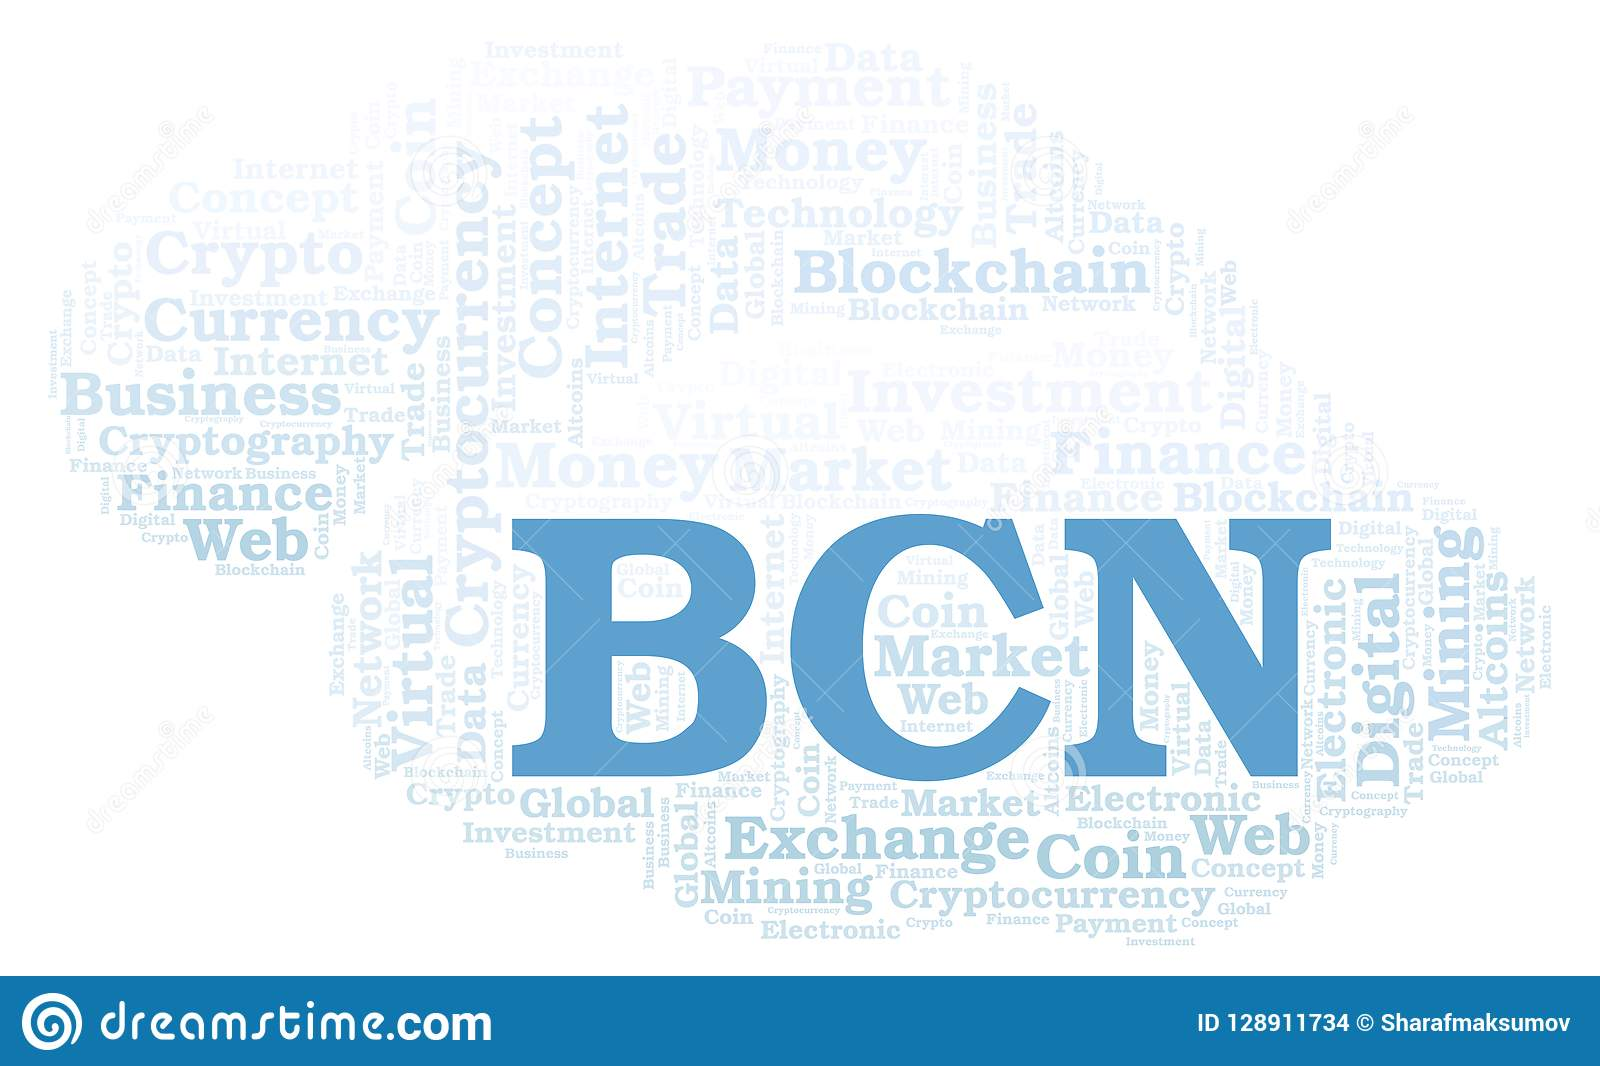 what is bytecoin cryptocurrency